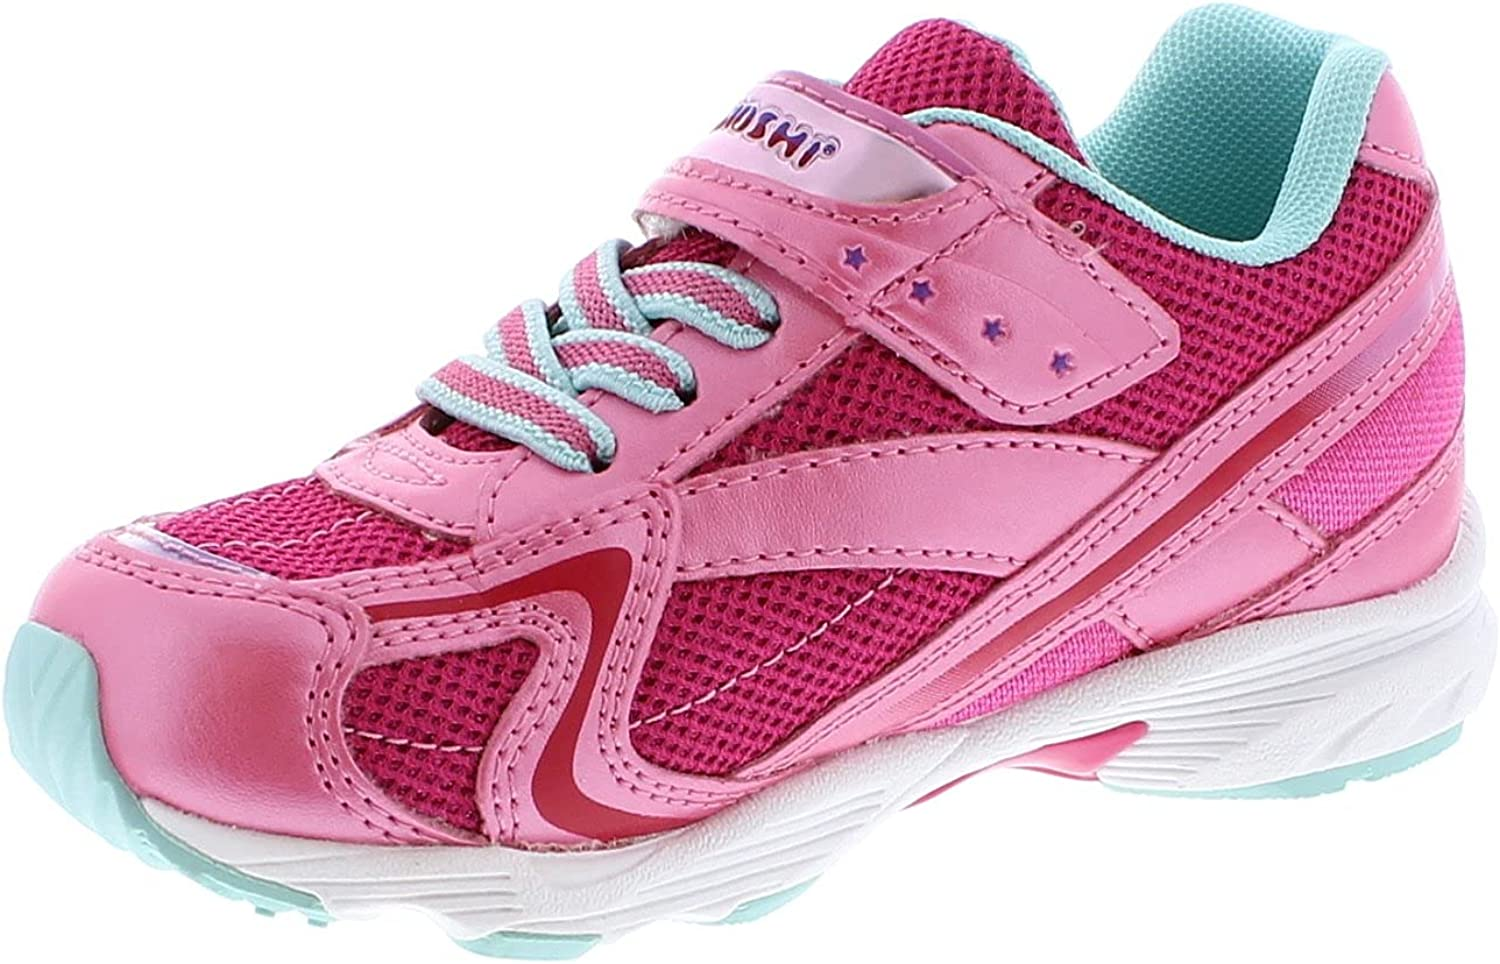 TSUKIHOSHI 3537 Glitz Strap-Closure Machine-Washable Child Sneaker Shoe with Wide Toe Box and Slip-Resistant, Non-Marking Outsole - Hotpink/Mint, 11 Little Kid (4-8 Years)